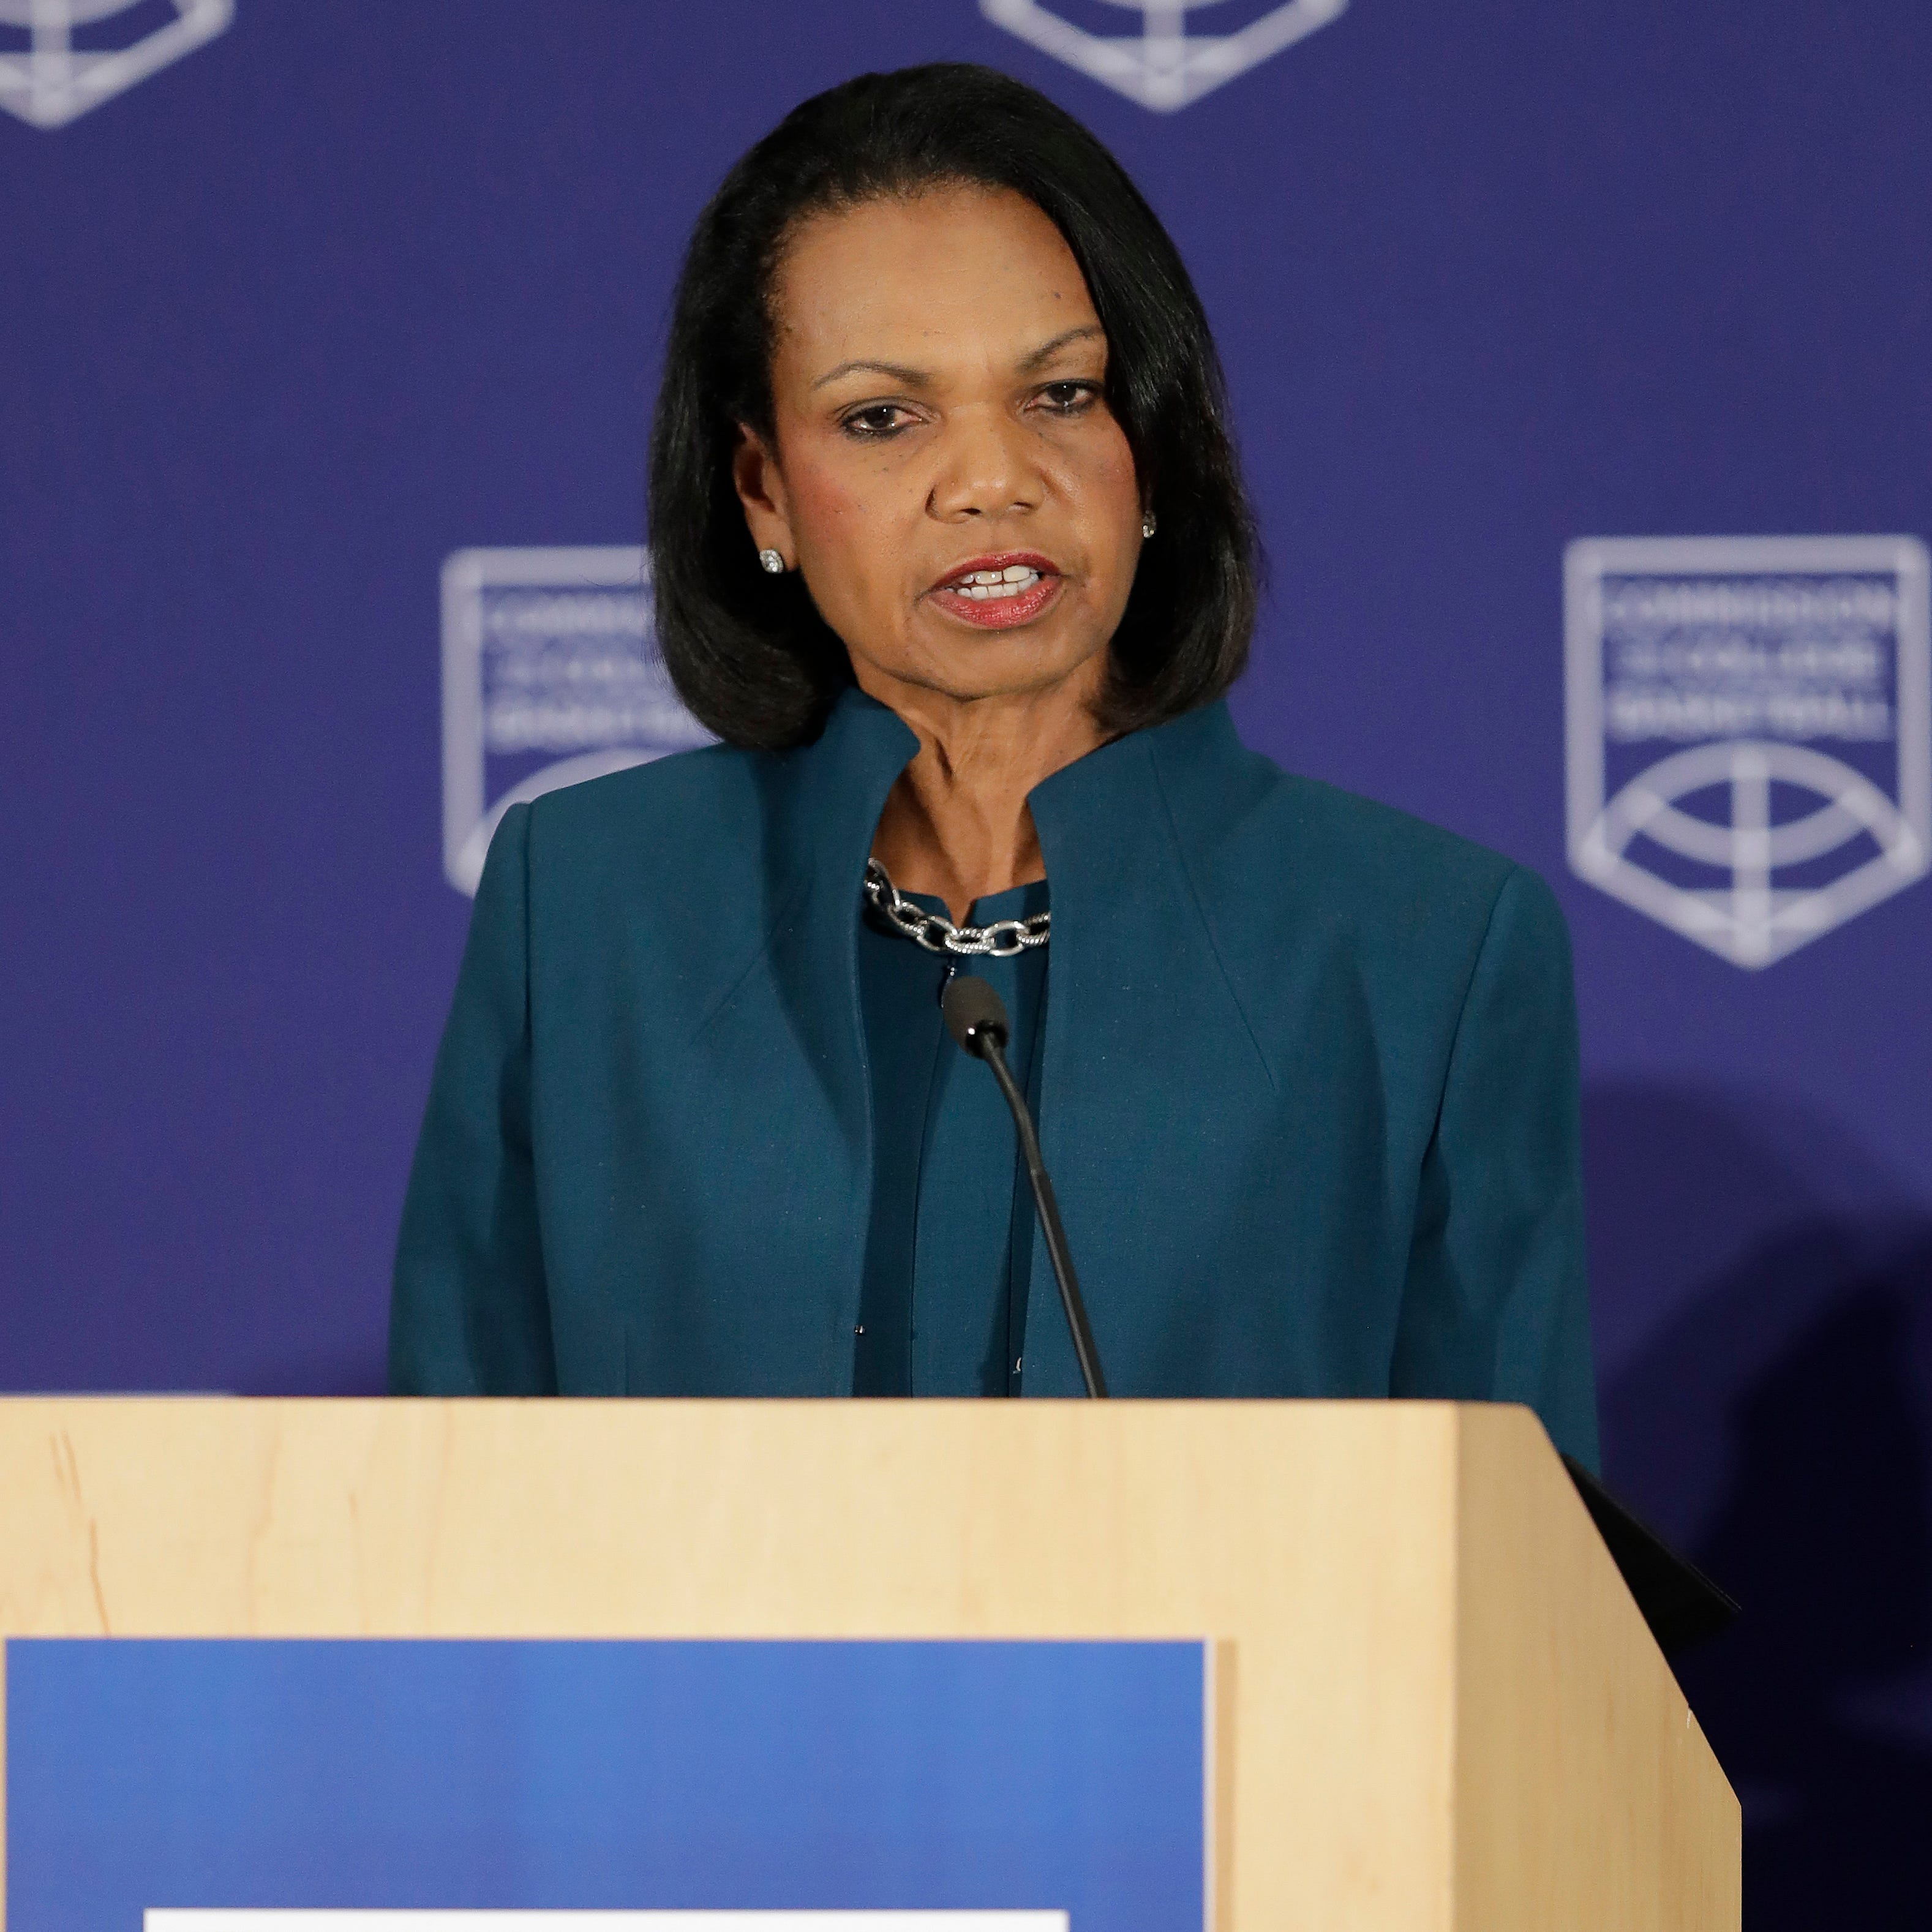 Former U.S. Secretary of State Condoleezza Rice speaks during a news conference at the NCAA headquarters April 25, 2018, in Indianapolis.